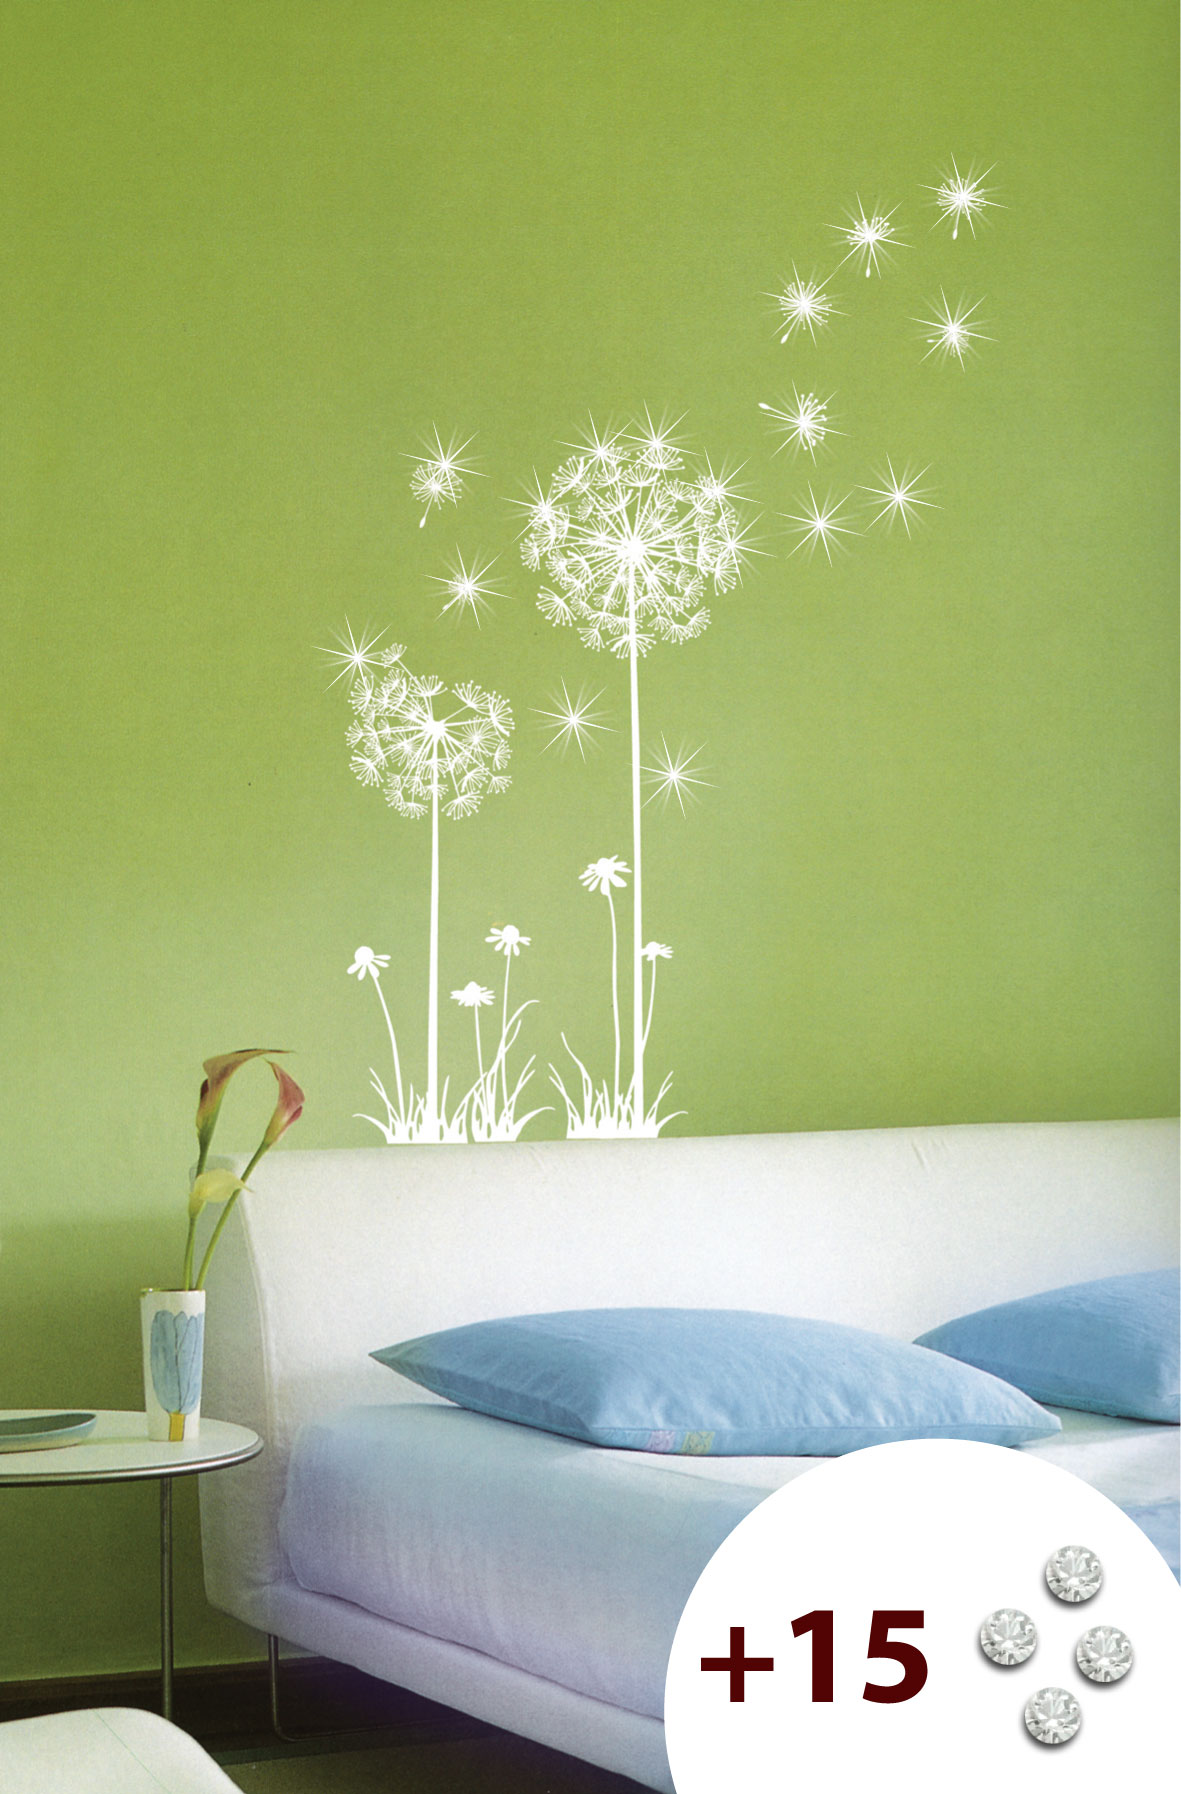 Ambiance Wall Stickers https://www.ambiance-sticker/en/wall-decal-design-hearts